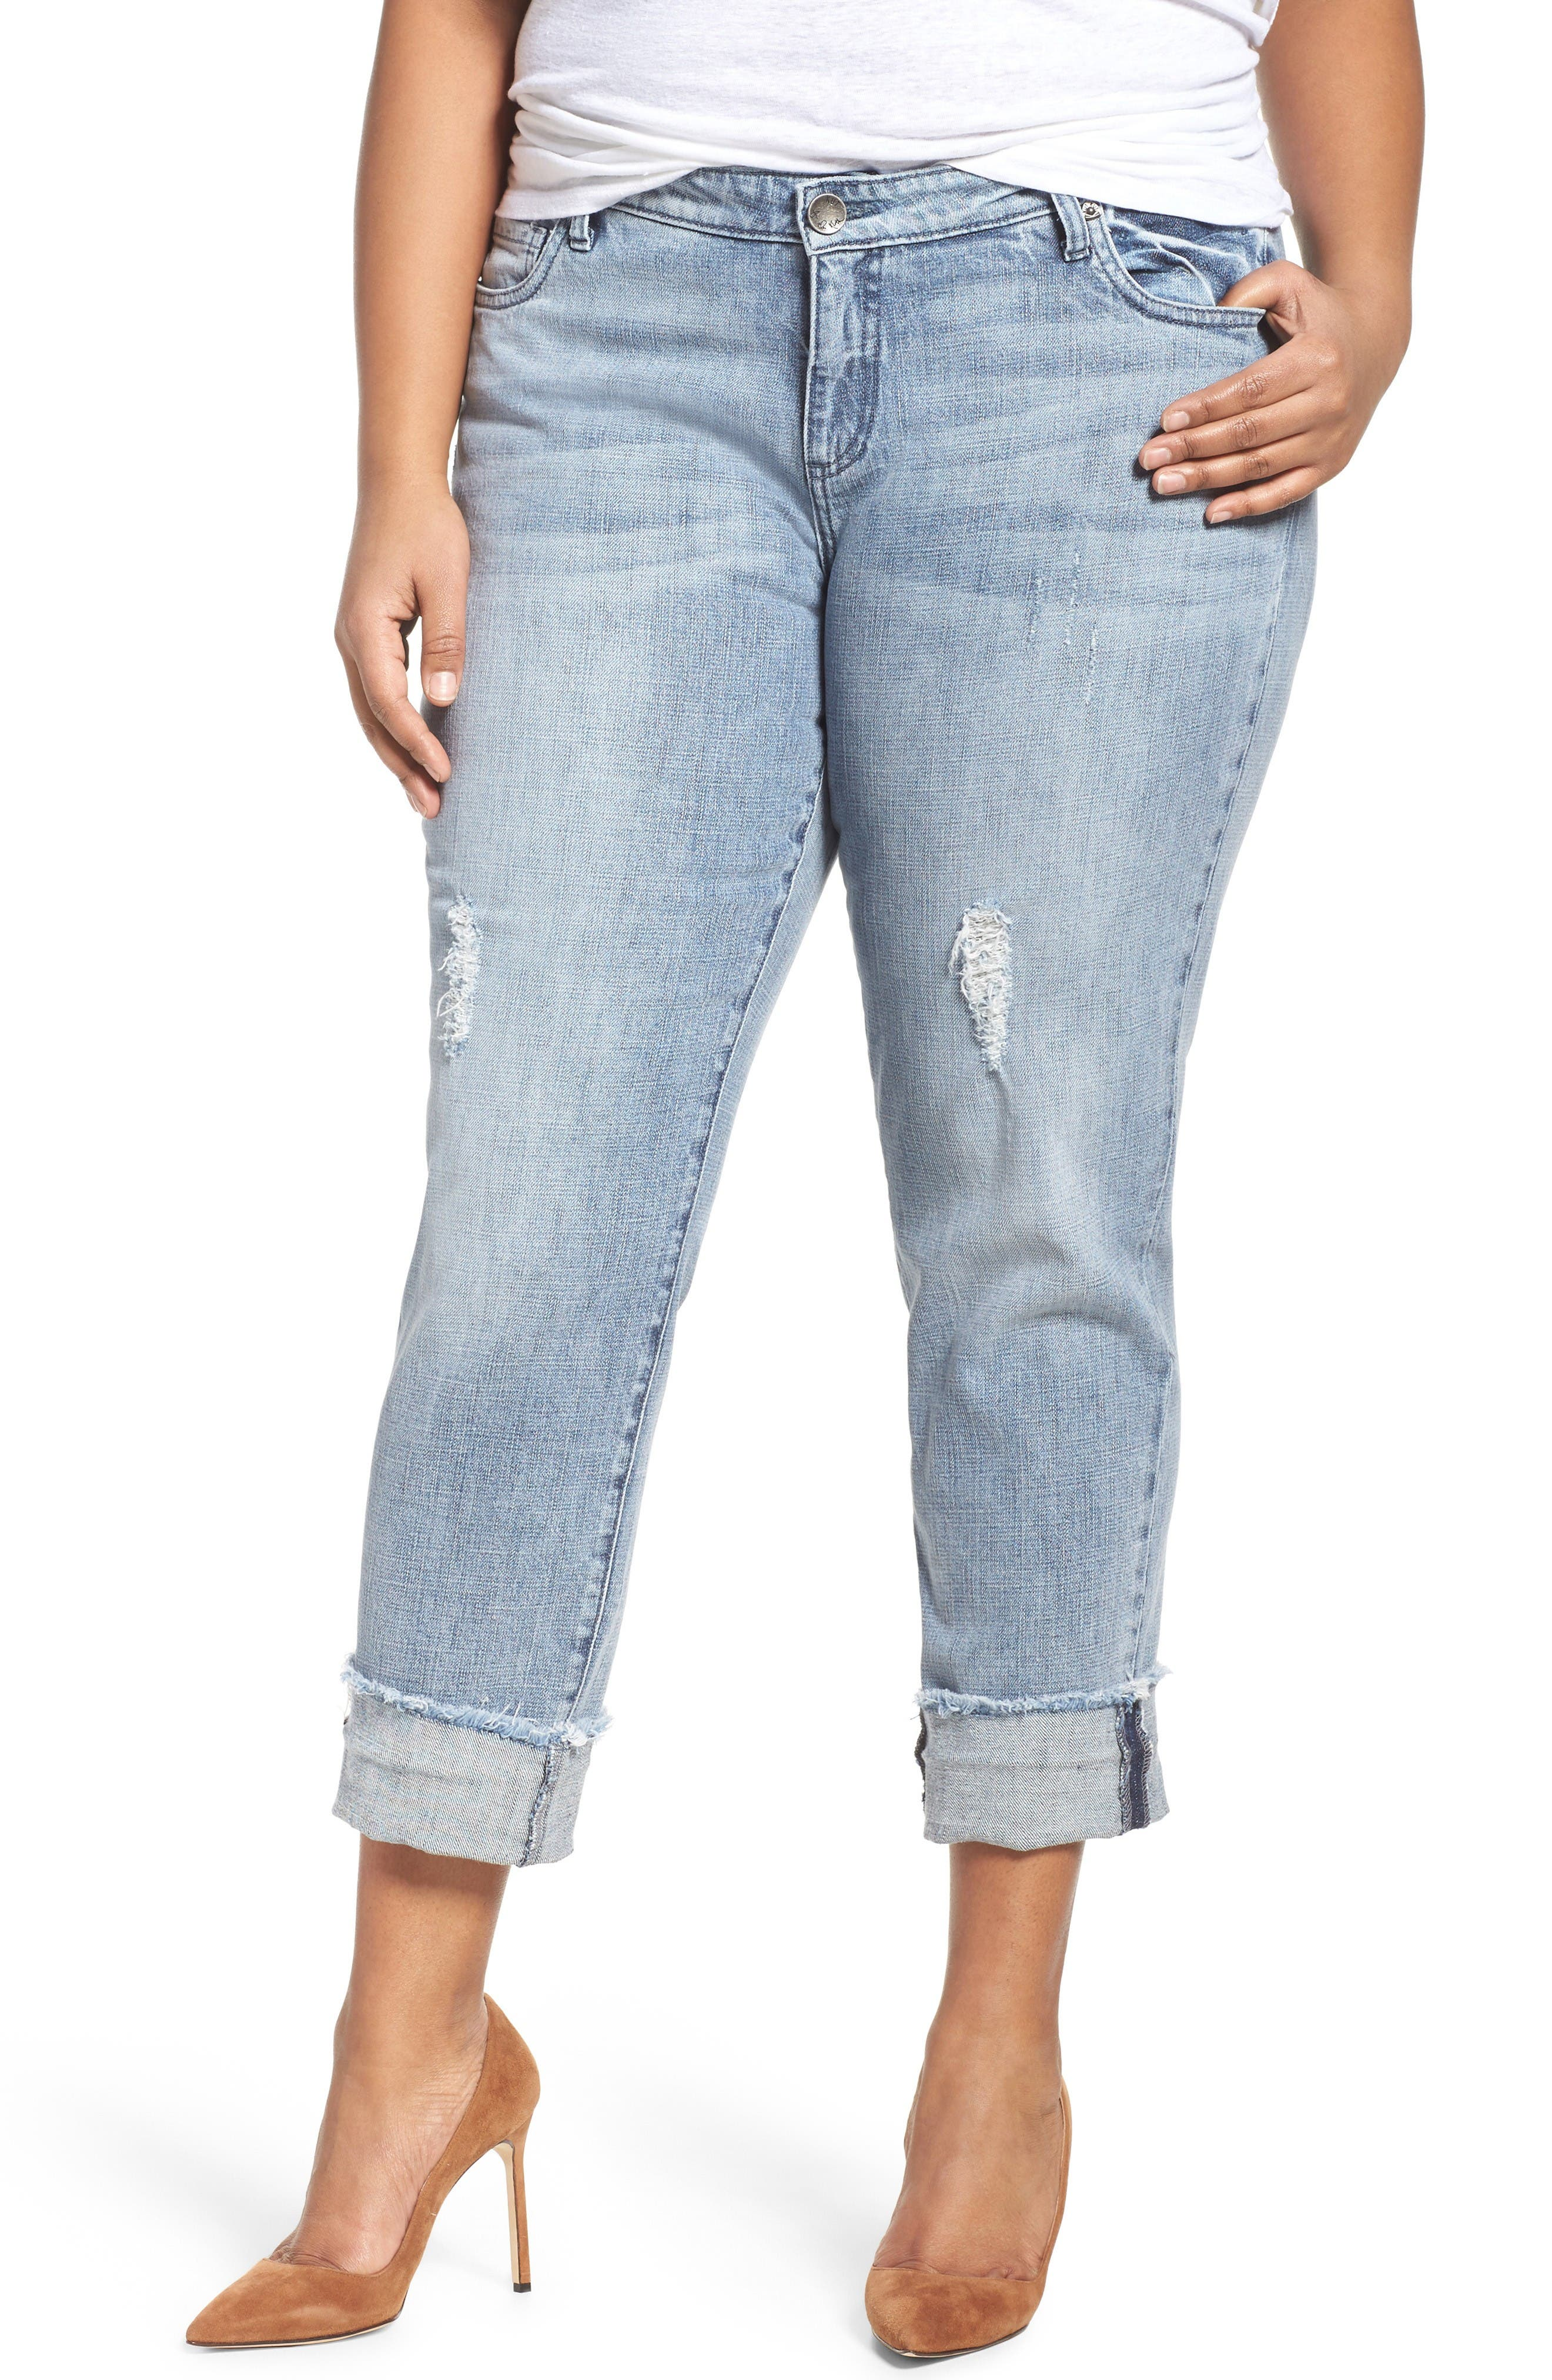 Alternate Image 1 Selected - KUT from the Kloth Catherine Fray Hem Distressed Boyfriend Jeans (Plus Size)